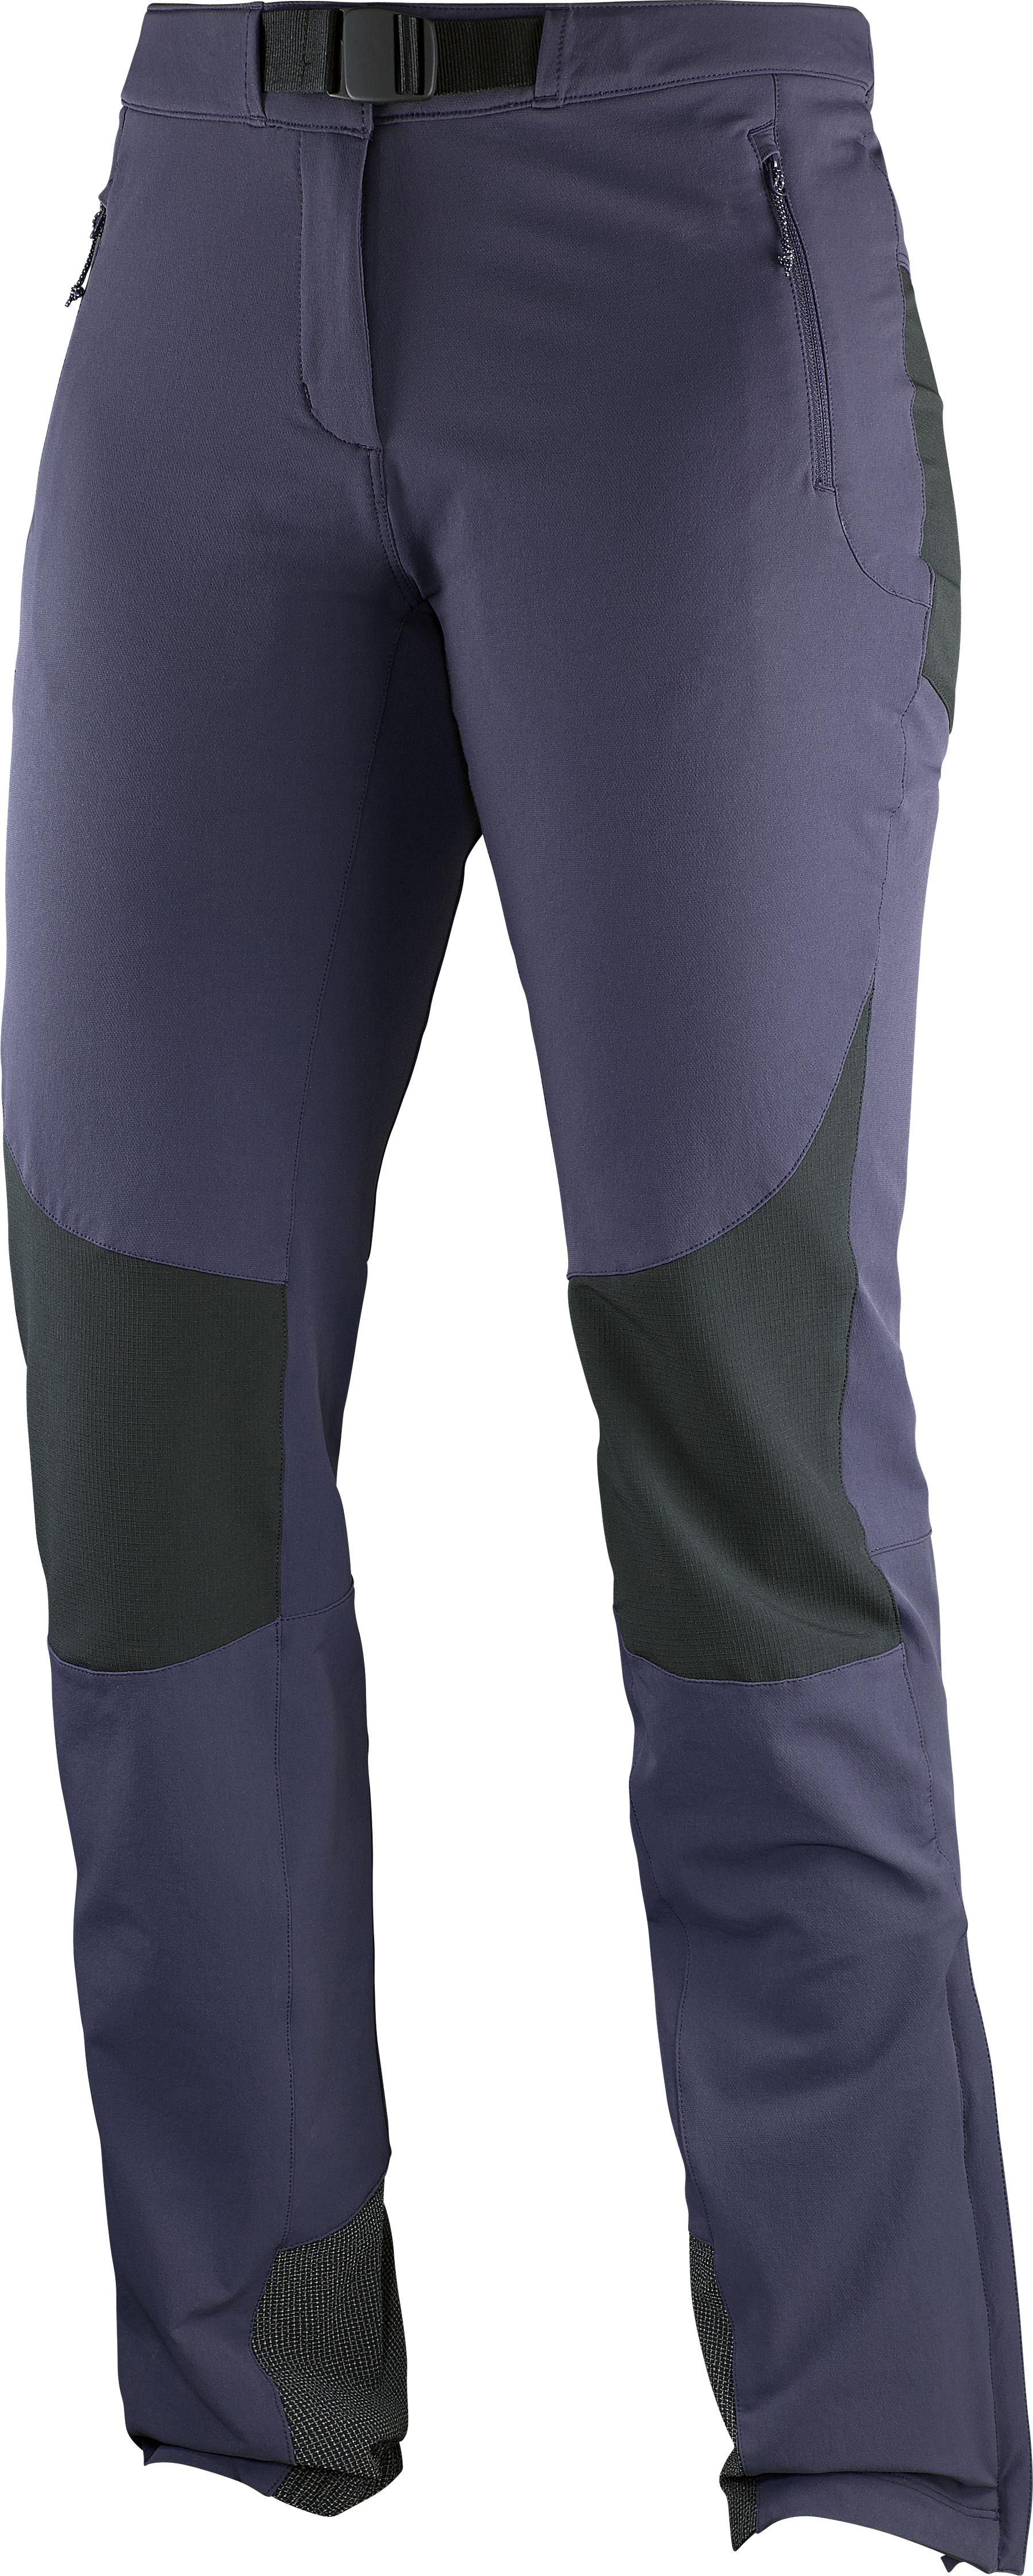 Salomon Wayfarer Mountain Pant 379768 fialová 32